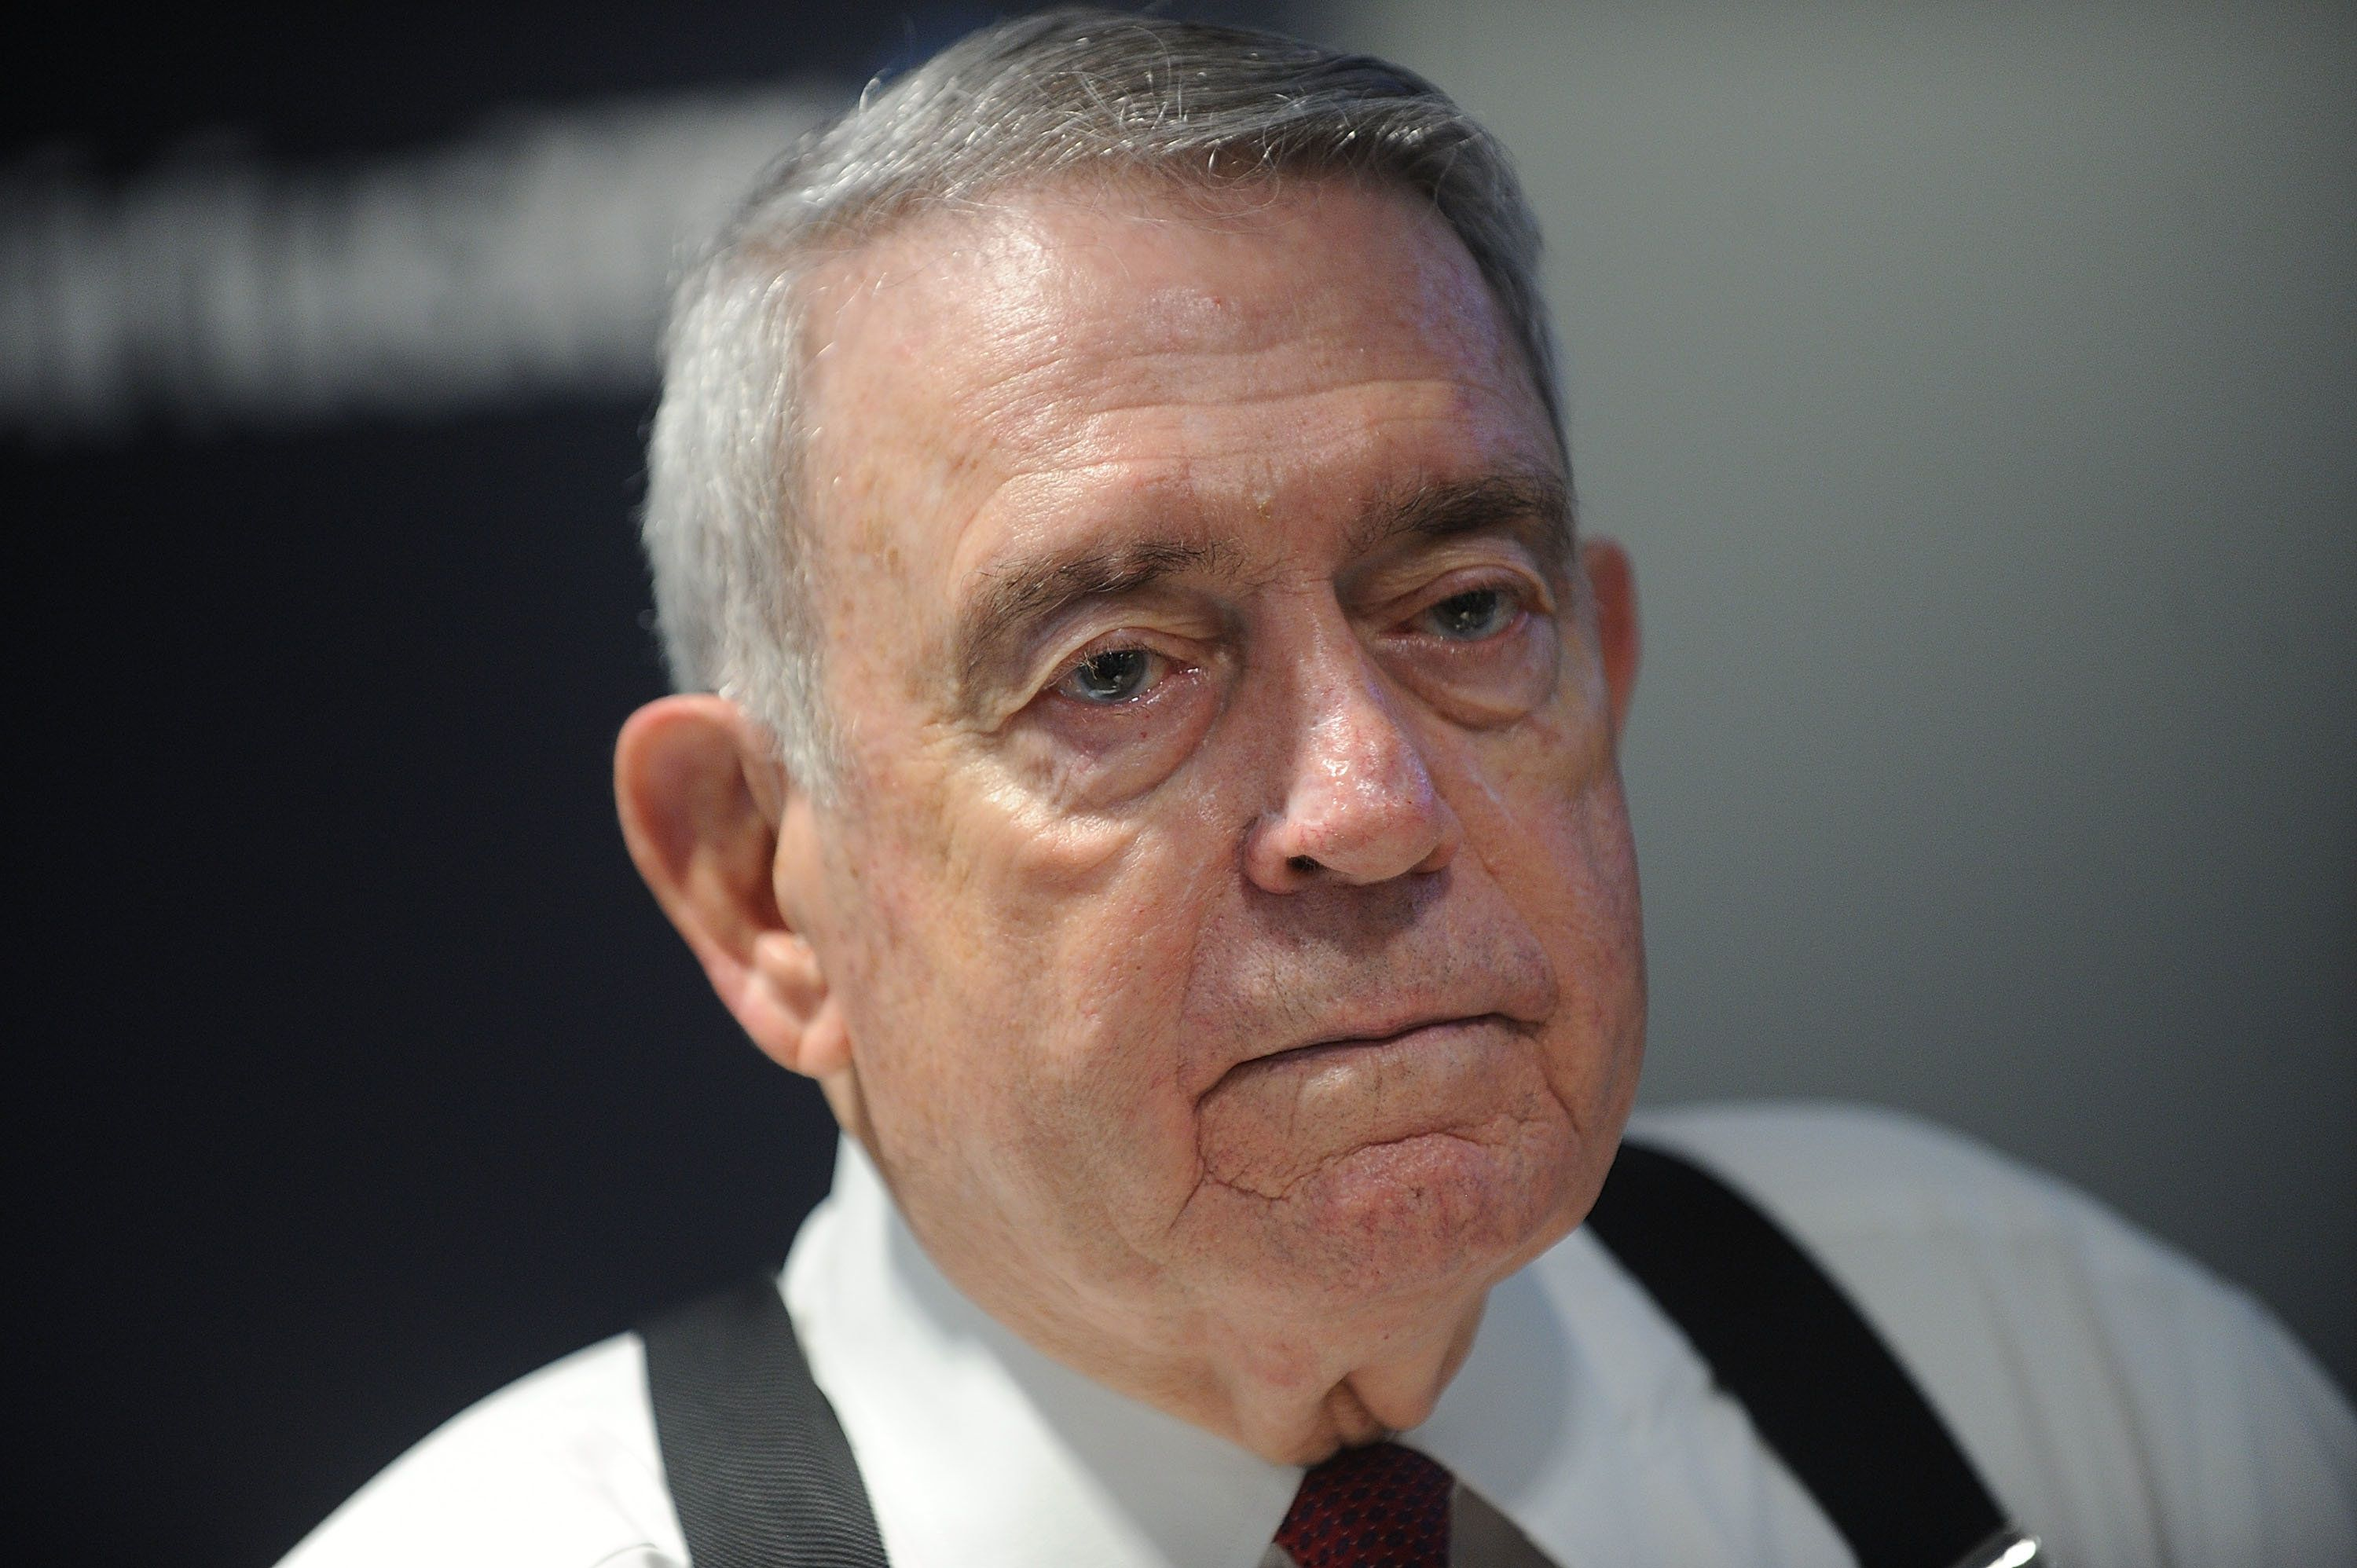 NEW YORK, NY - AUGUST 25:  Journalist Dan Rather attends celebrities visit SiriusXM on August 25, 2016 at SiriusXM Studio on August 25, 2016 in New York City.  (Photo by Brad Barket/Getty Images)